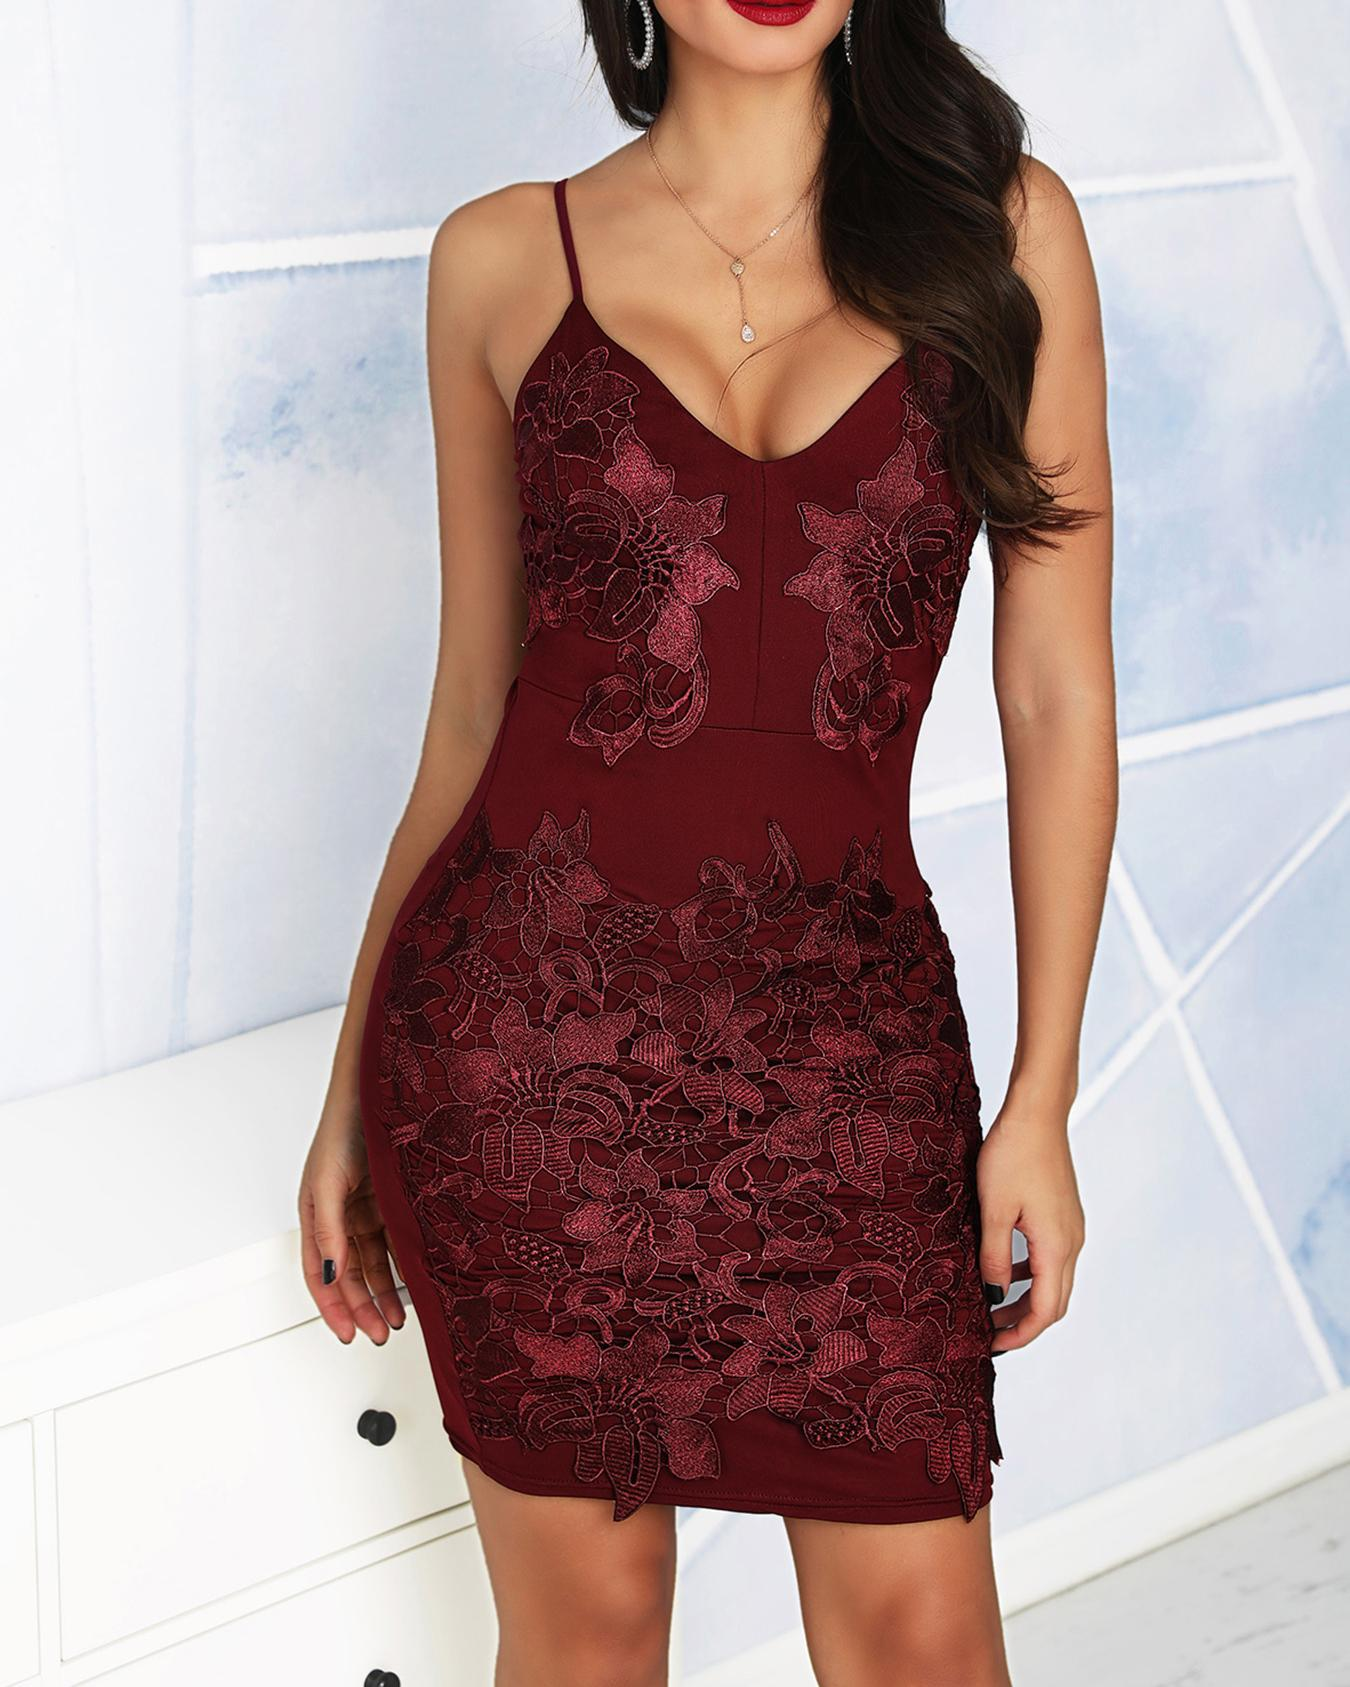 Spaghetti Strap Floral Lace Bodycon Dress